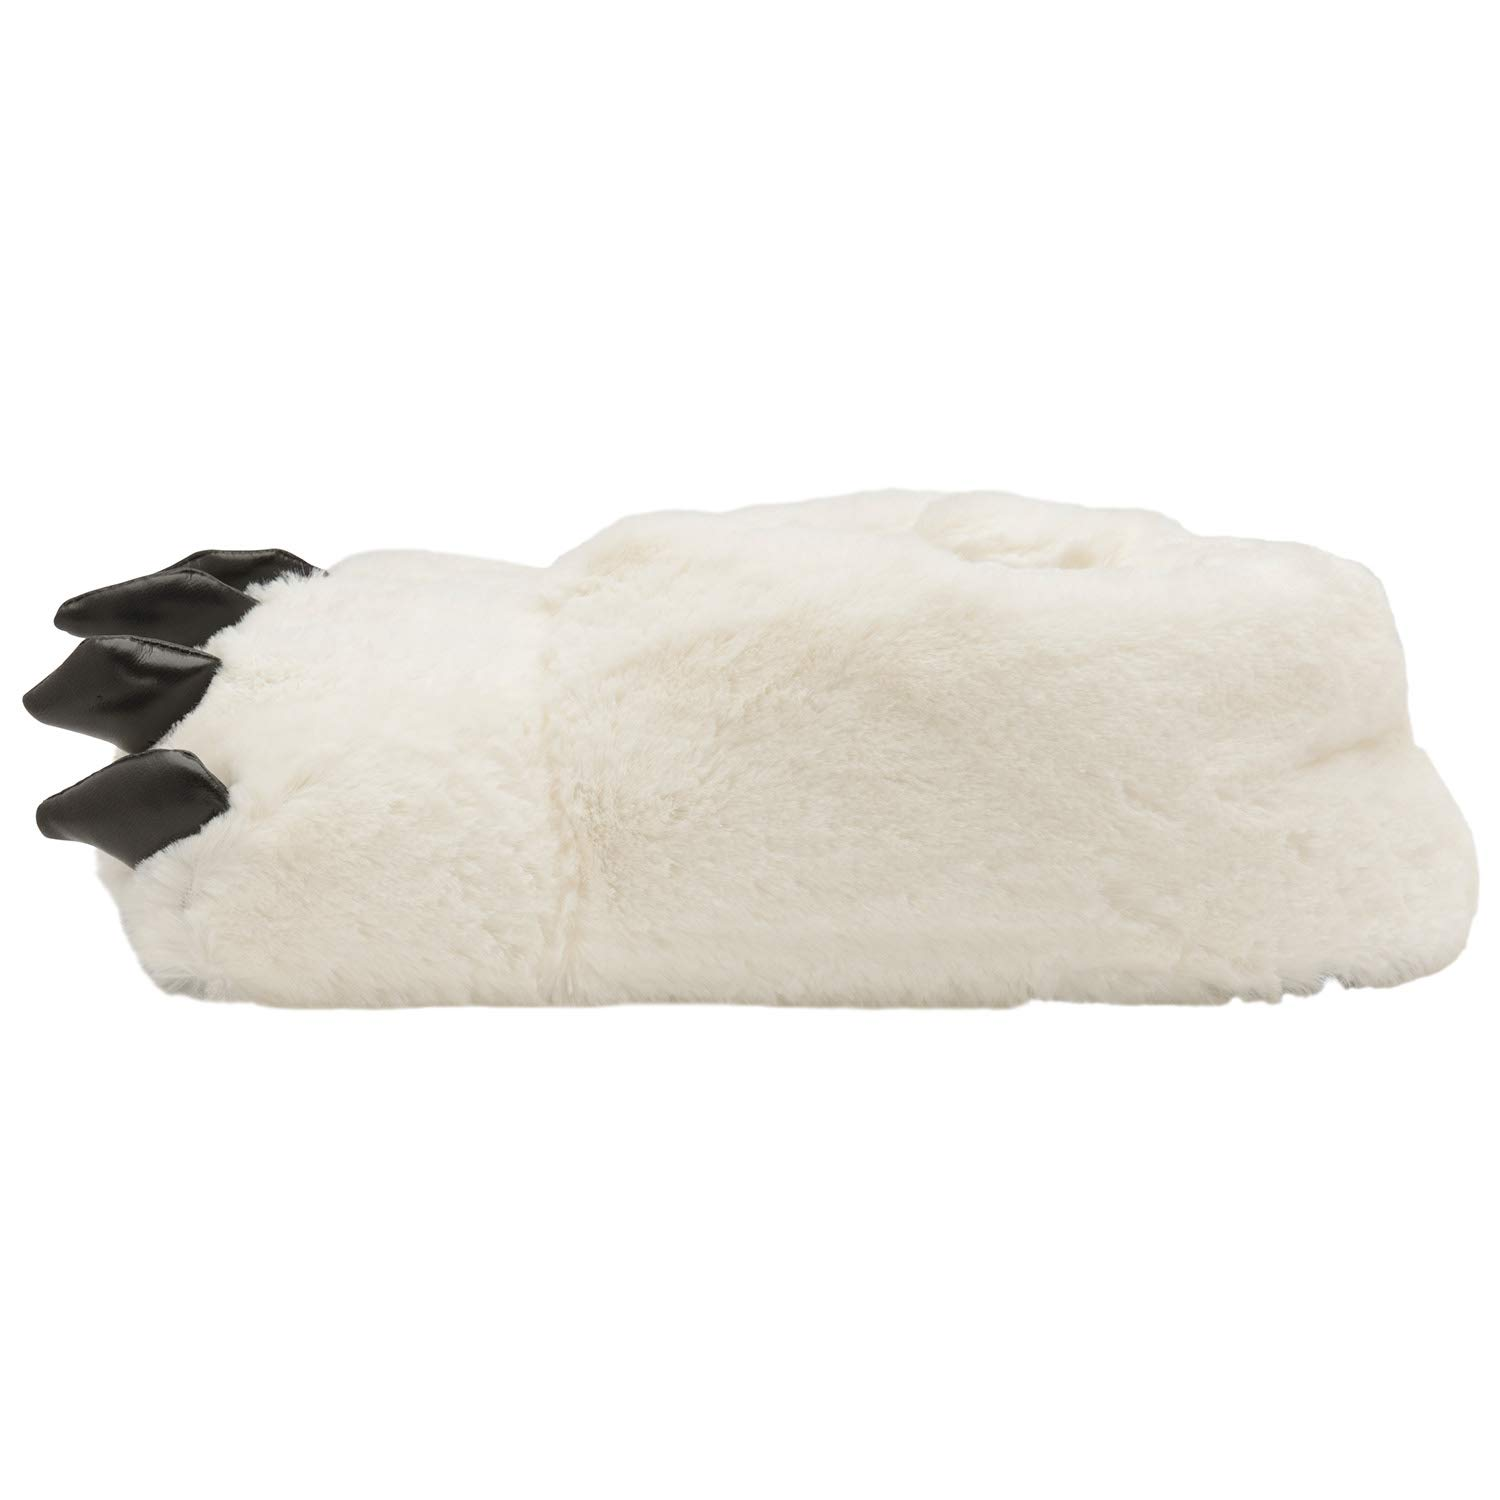 Bruno Galli Hot Dog 64785, Galli Chaussons White Femme White Dog Claw 5d9a3aa - fast-weightloss-diet.space